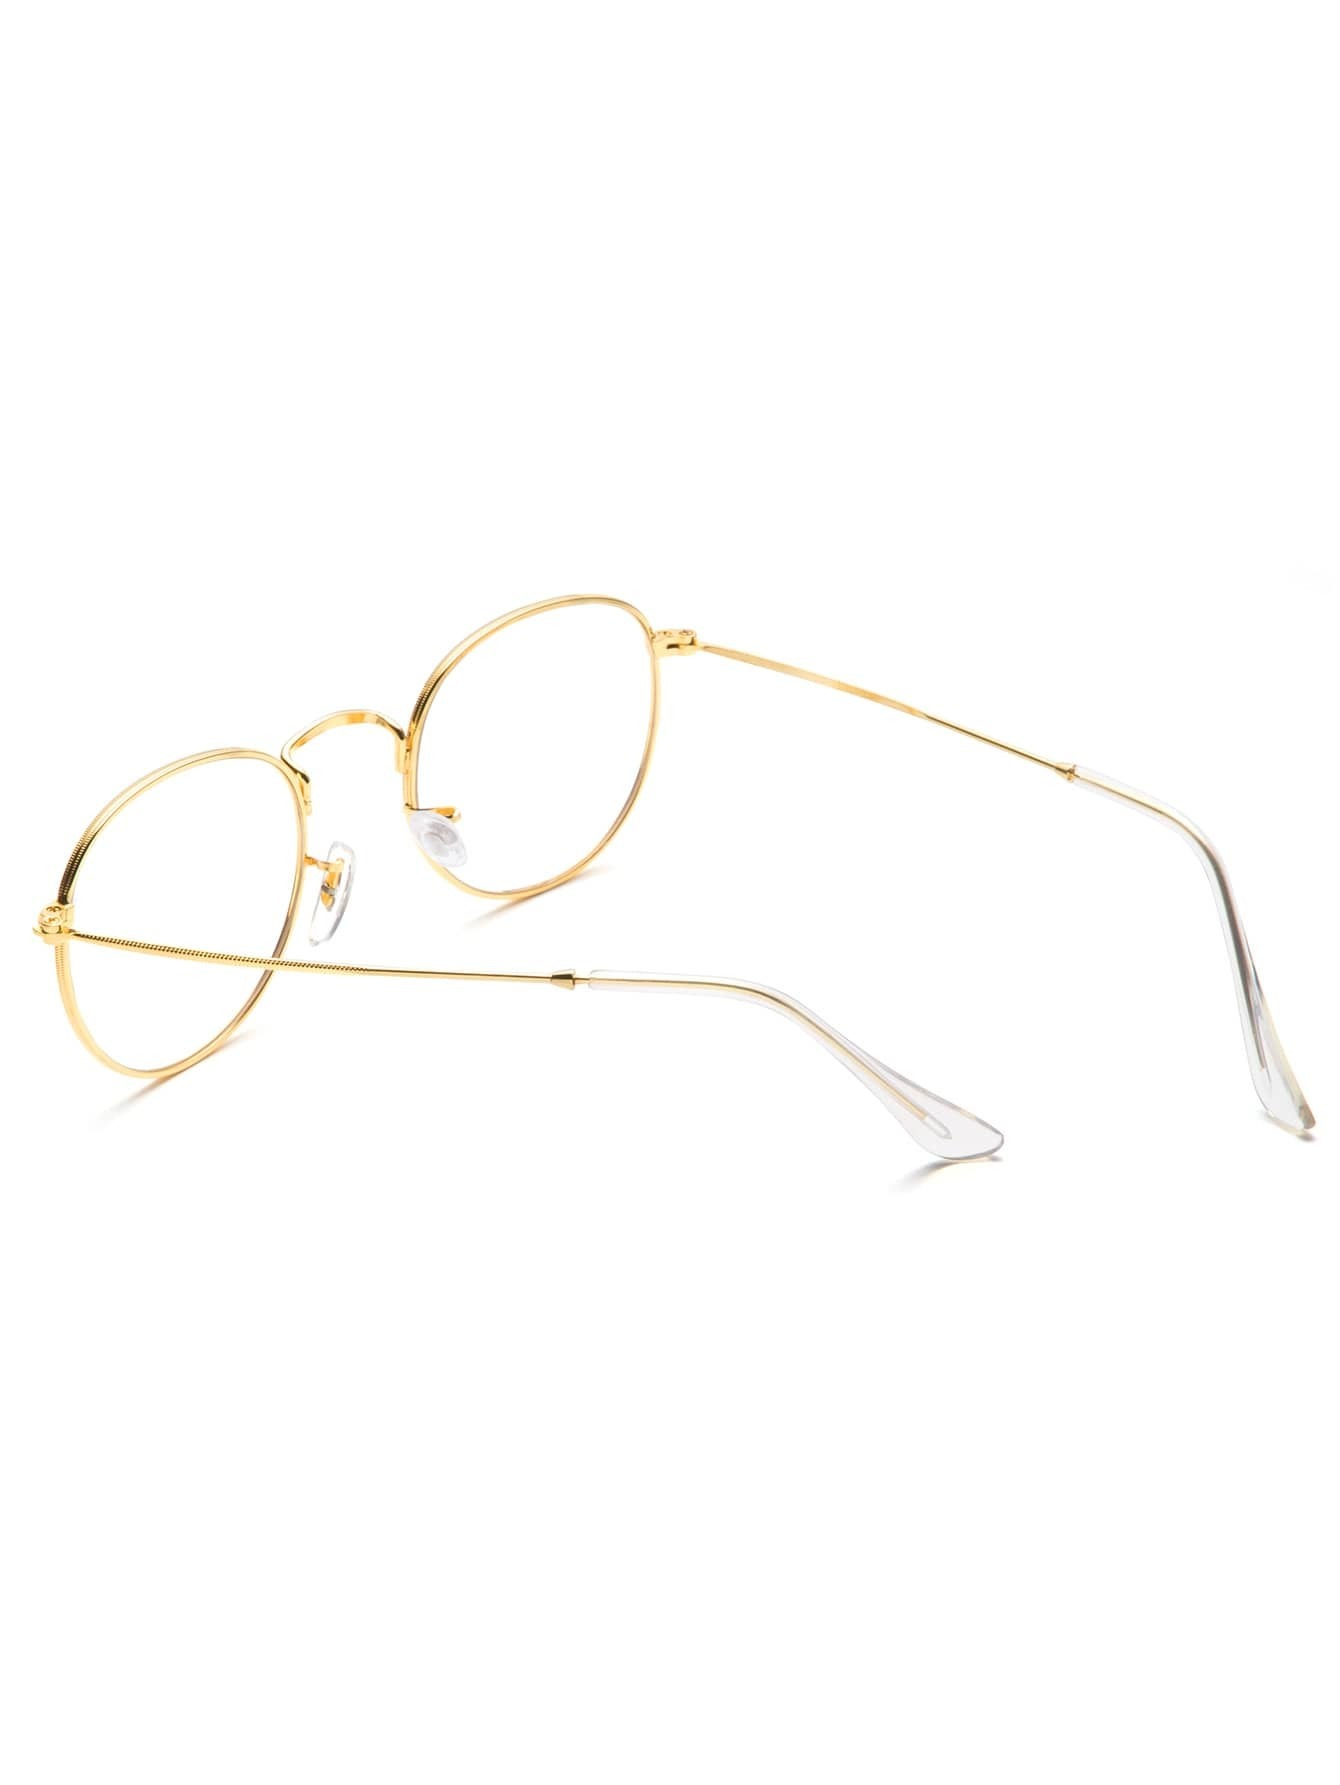 gold frame clear lens glasses sunglass160909312_1 sunglass160909312_1 sunglass160909312_2 sunglass160909312_2 sunglass160909312_2